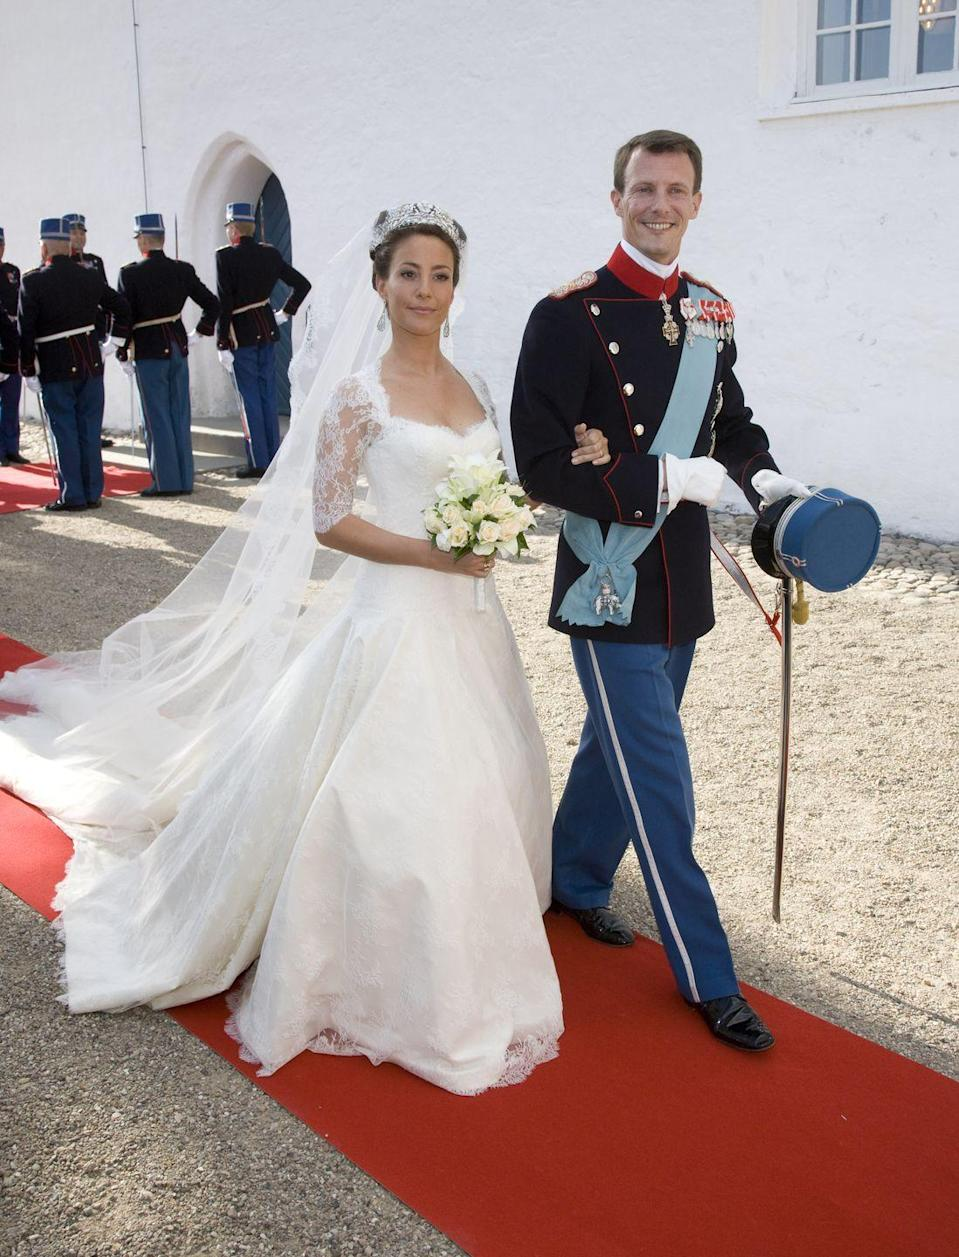 <p>Princess Marie of Denmark married Prince Joachim on May 24, 2008 at Møgeltønder Church. Her dress was designed by David Arasa and Claudio Morelli. Covered in lace from head to toe, the low-waist, ivory silk faille gown also featured a floral pattern in raised satin stitch. </p>